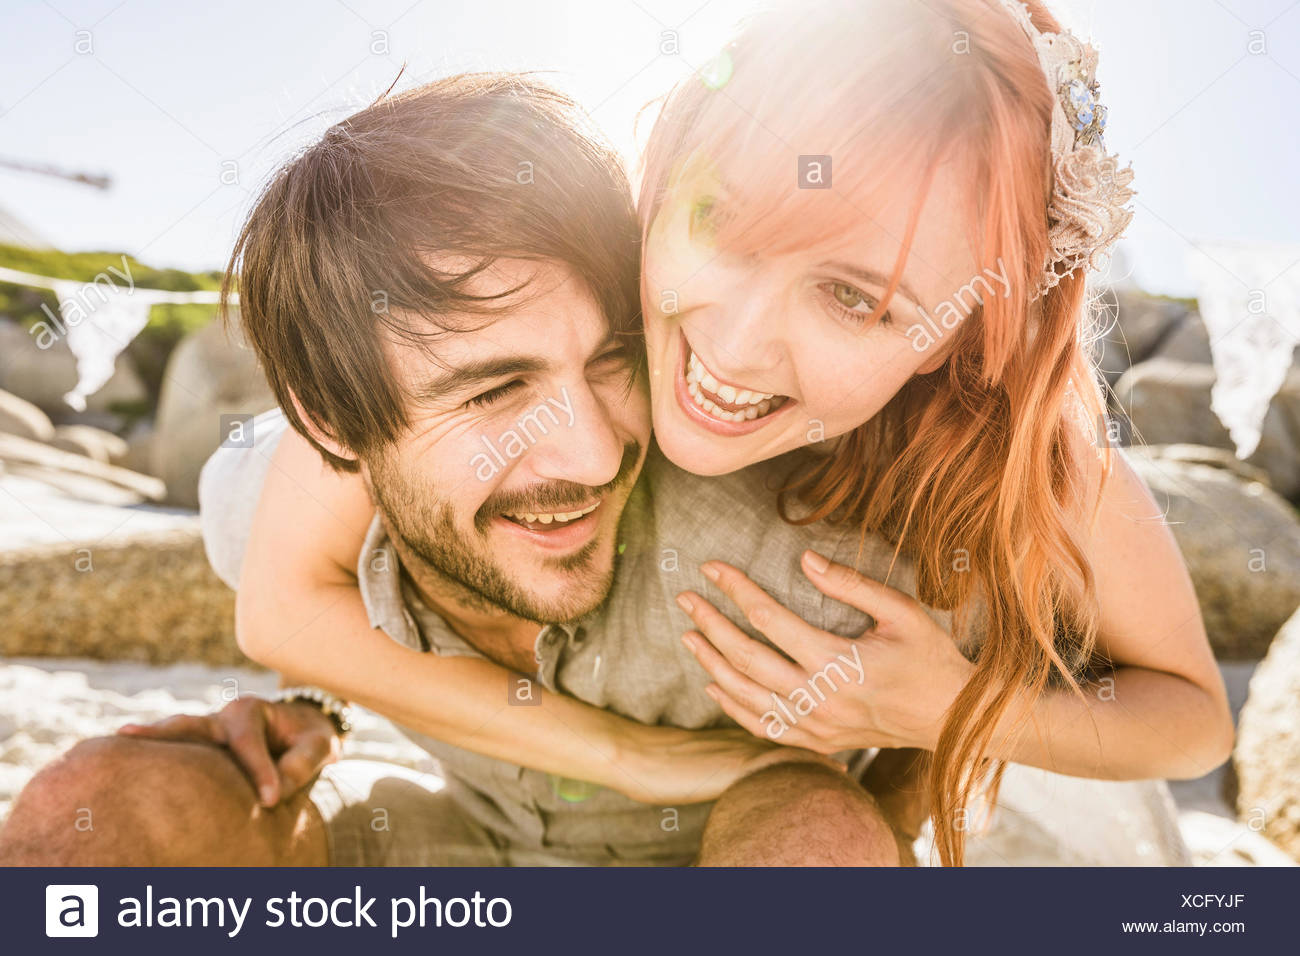 Woman behind man arms around shoulders smiling - Stock Image